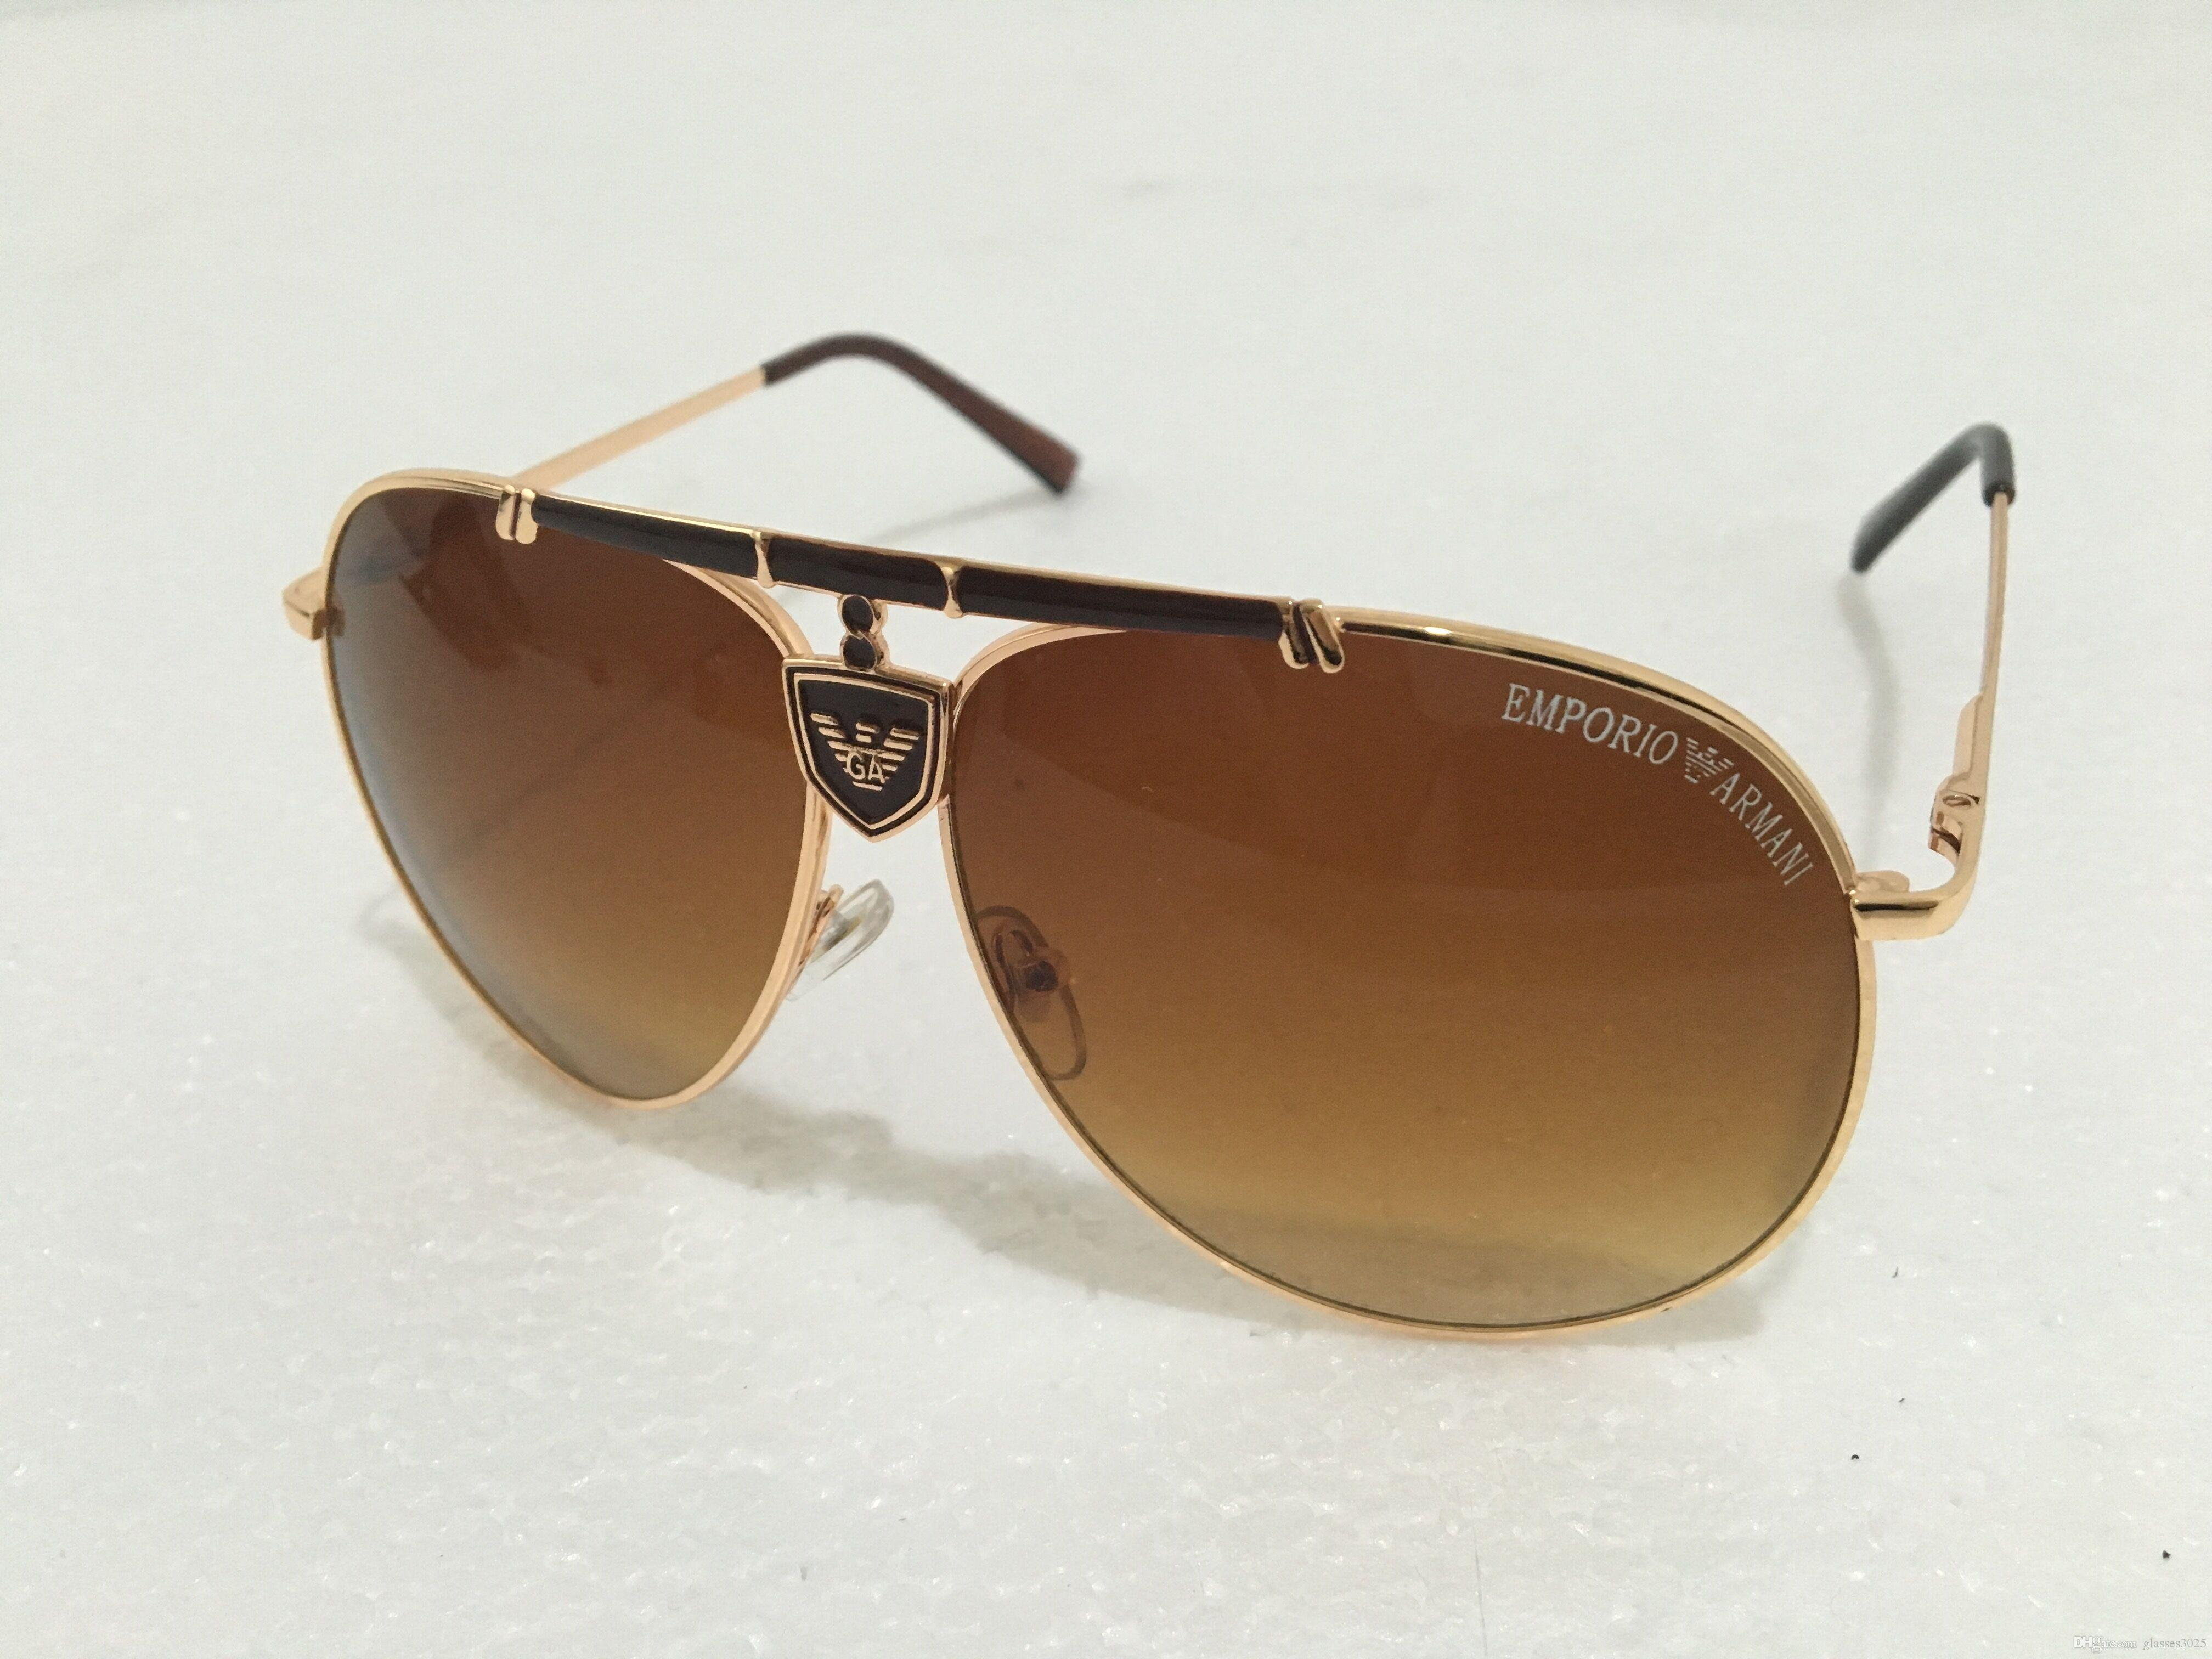 b5716732ee7 Hot Popular Sunglasses Luxury Women Brand Designer Square Summer Style Full Frame  Top Quality UV Protection Mixed Color Come With Box Victoria Beckham ...